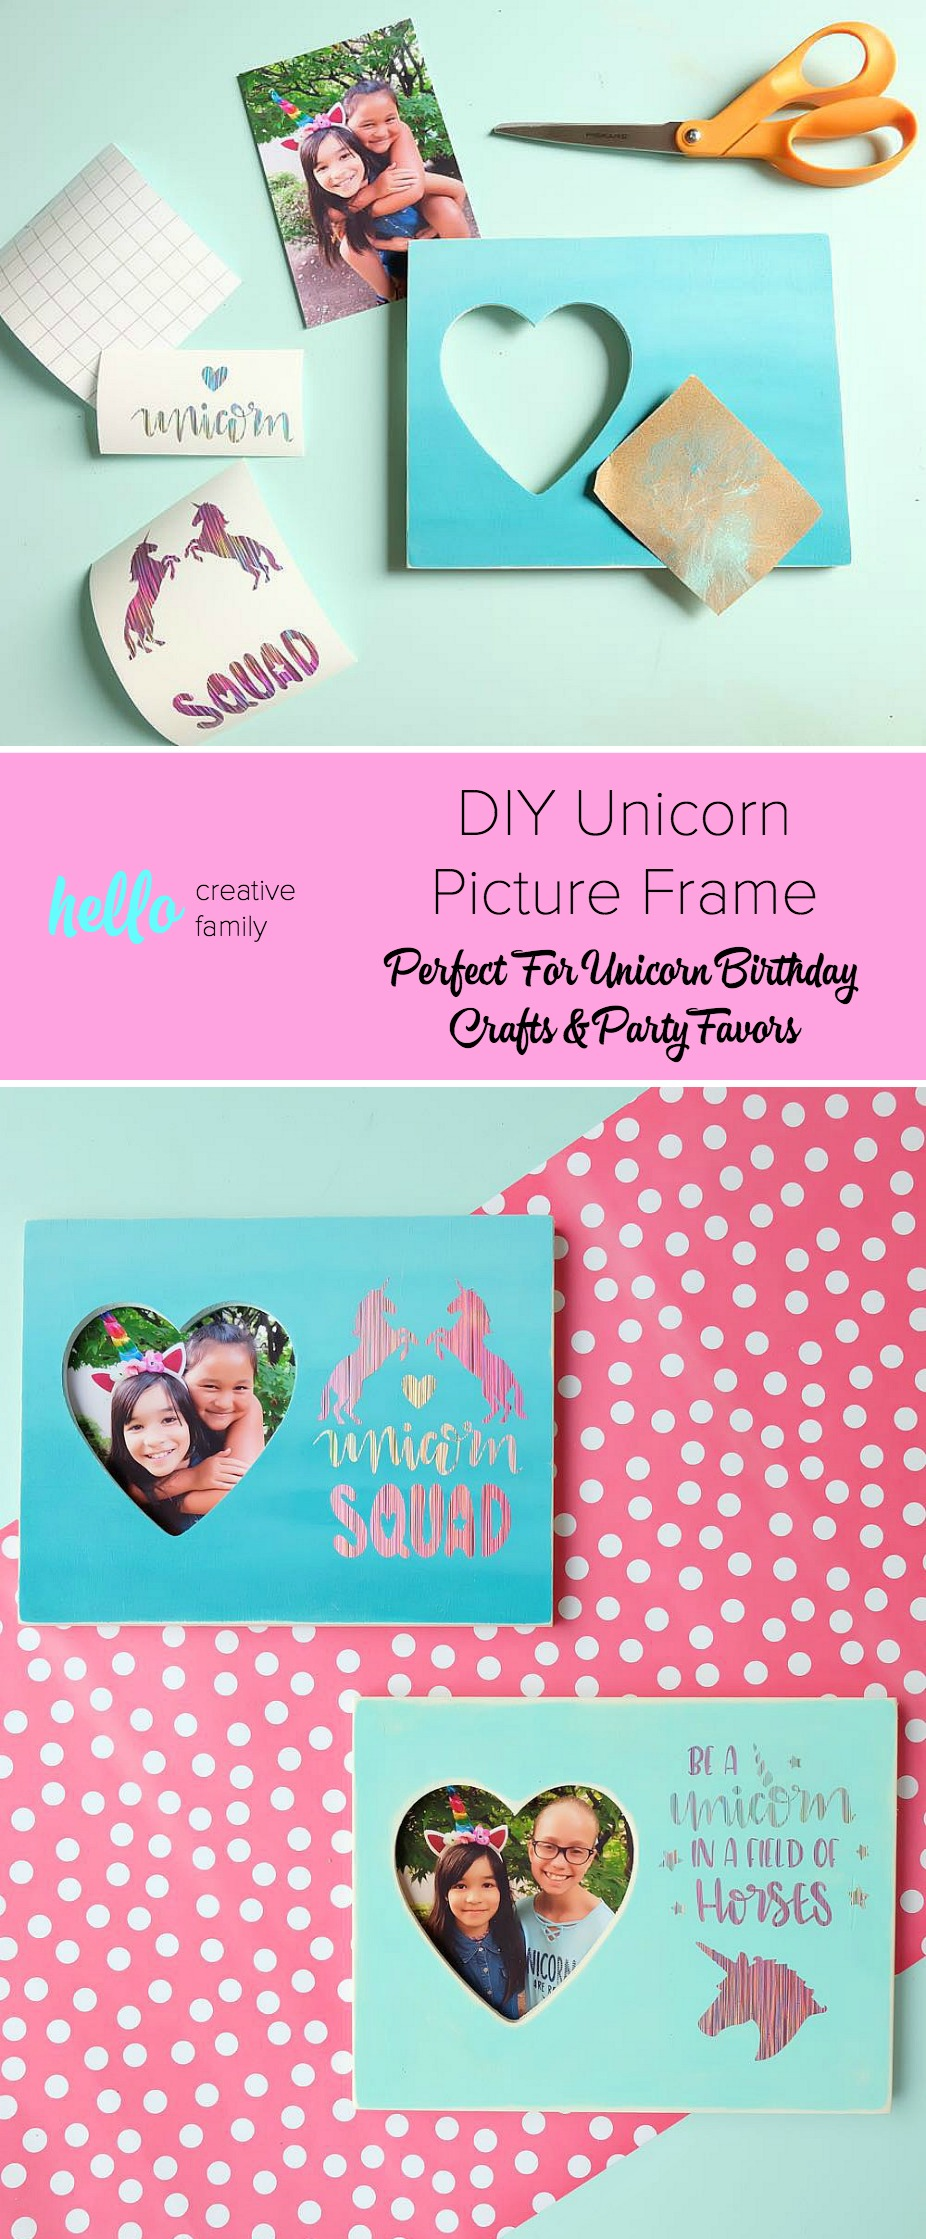 The perfect unicorn themed birthday party craft and party favor idea! These DIY Unicorn Picture Frames double as a birthday party craft and a party favor! Do a photo shoot with the birthday child with each of their friends to put inside. An easy and inexpensive idea! #BirthdayParty #cricut #Unicorns #DIY